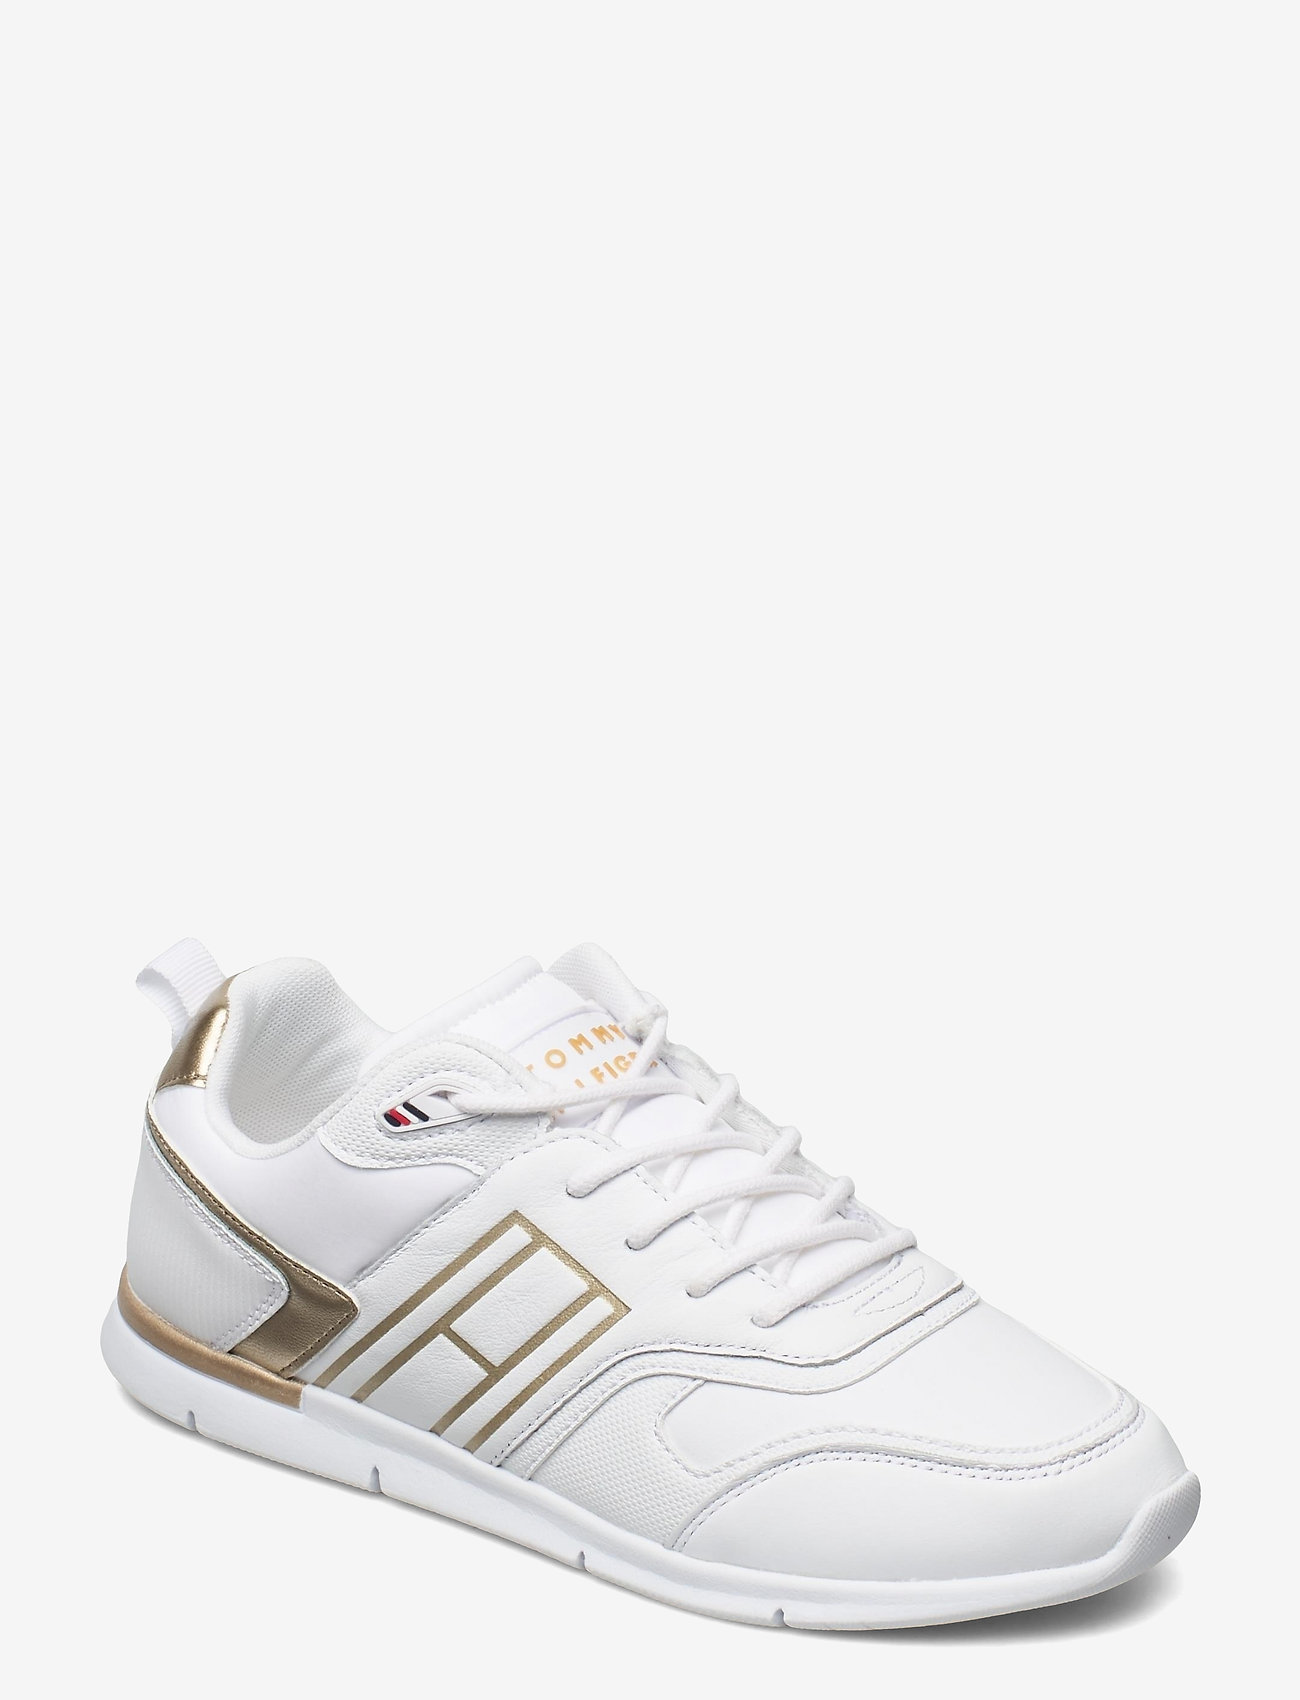 Tommy Hilfiger - METALLIC LIGHTWEIGHT SNEAKER - low top sneakers - gold - 0